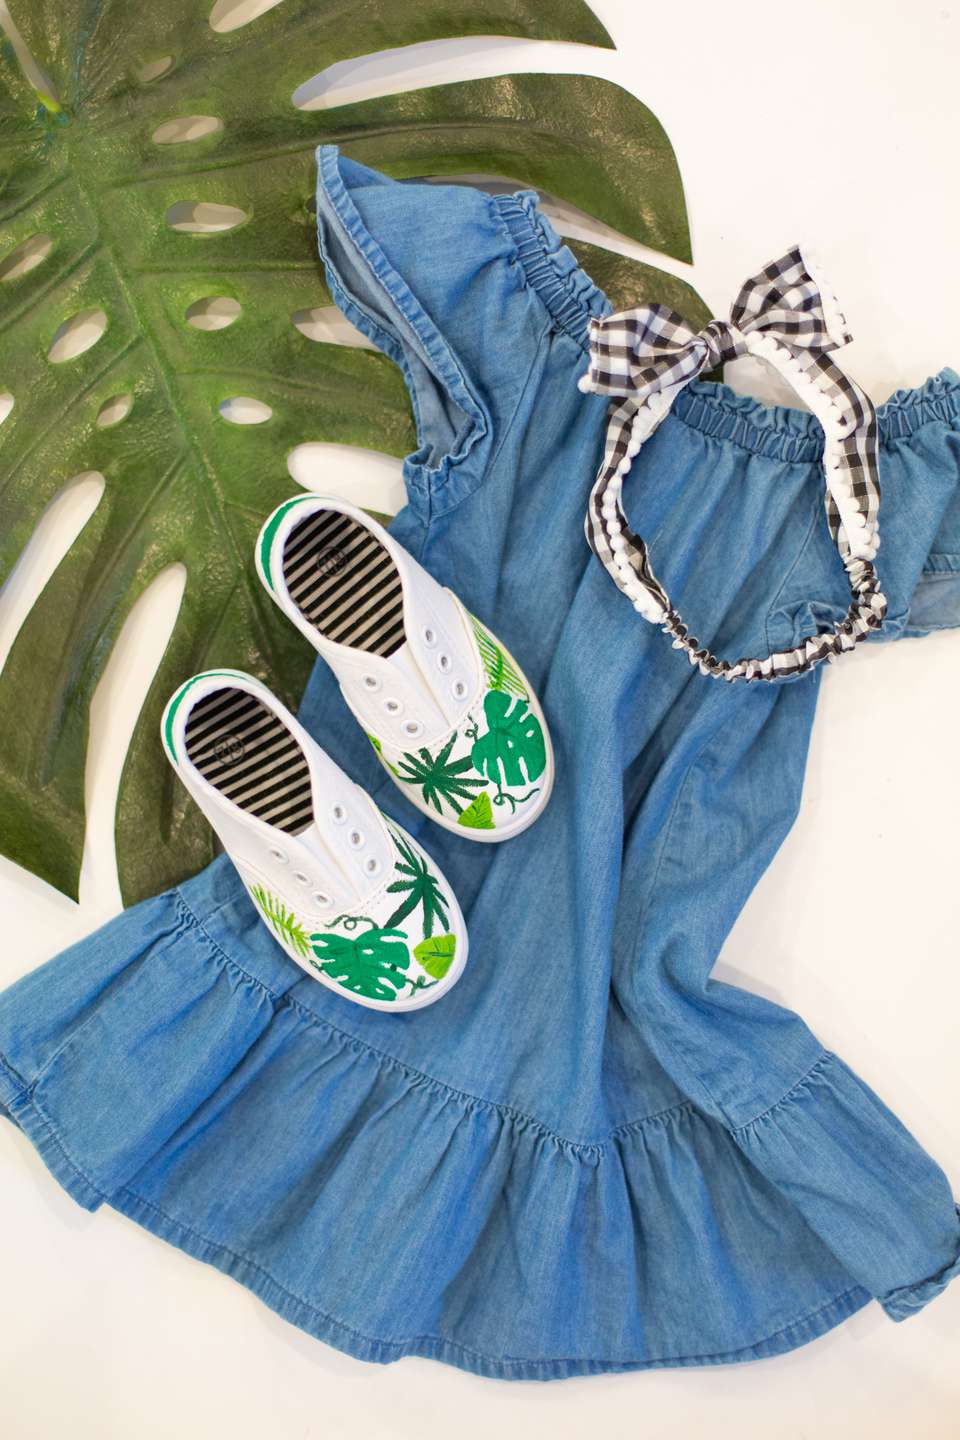 DIY painted canvas shoes on dress